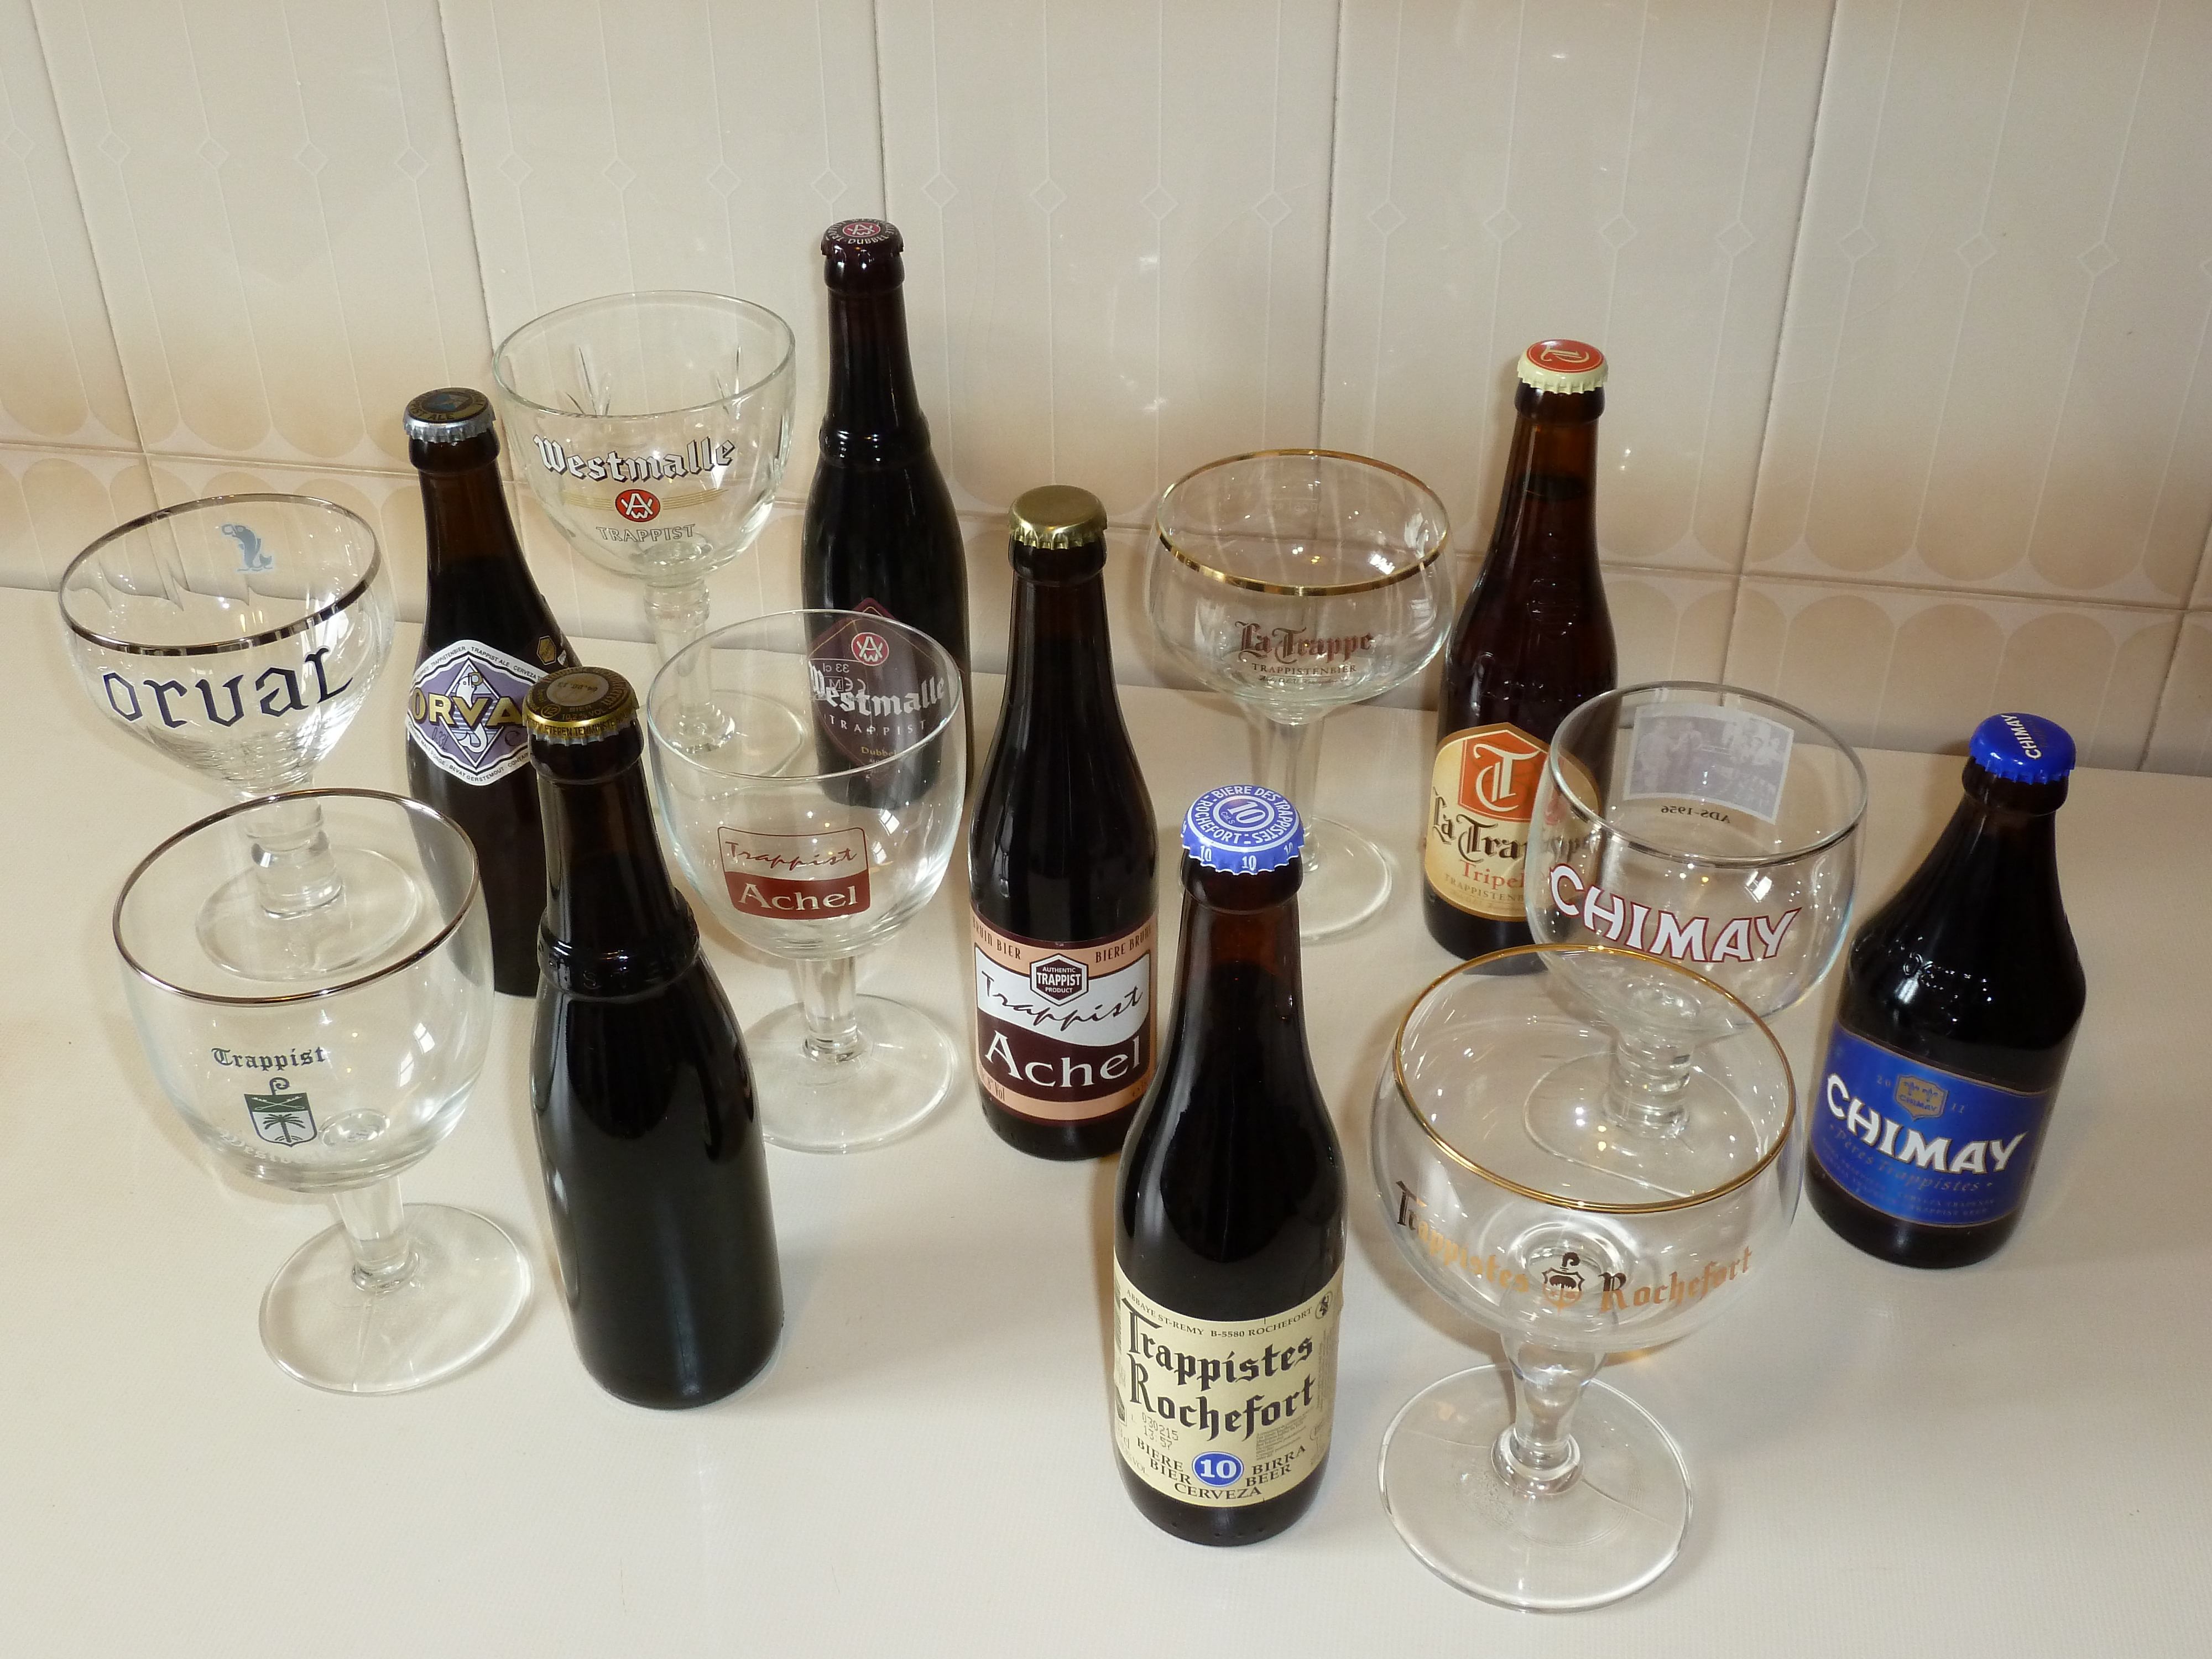 Trappist_beer_and_glasses